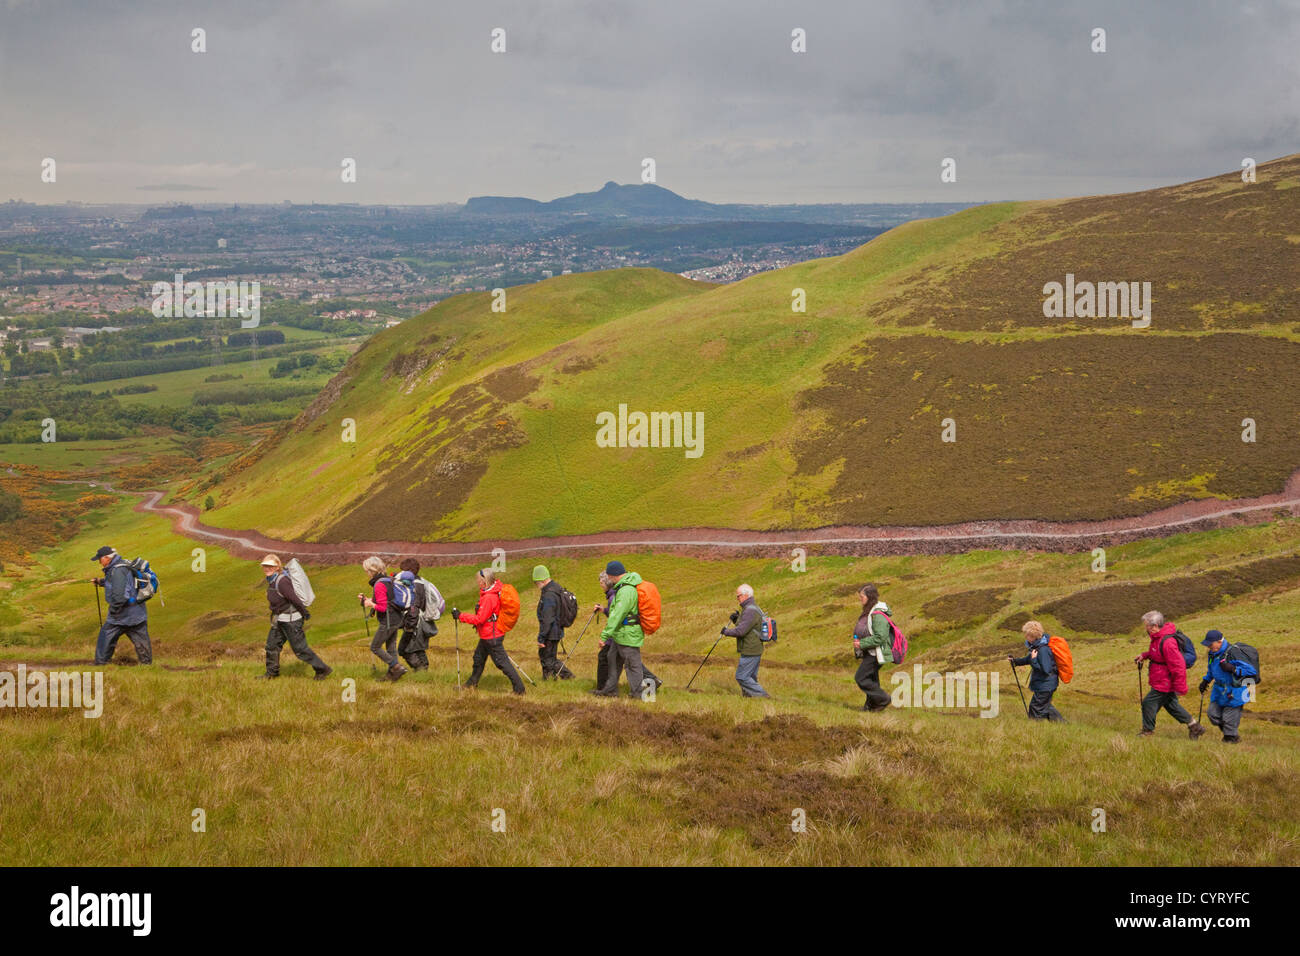 A Rambling Club in the Pentland Hills overlooking Edinburgh - Stock Image